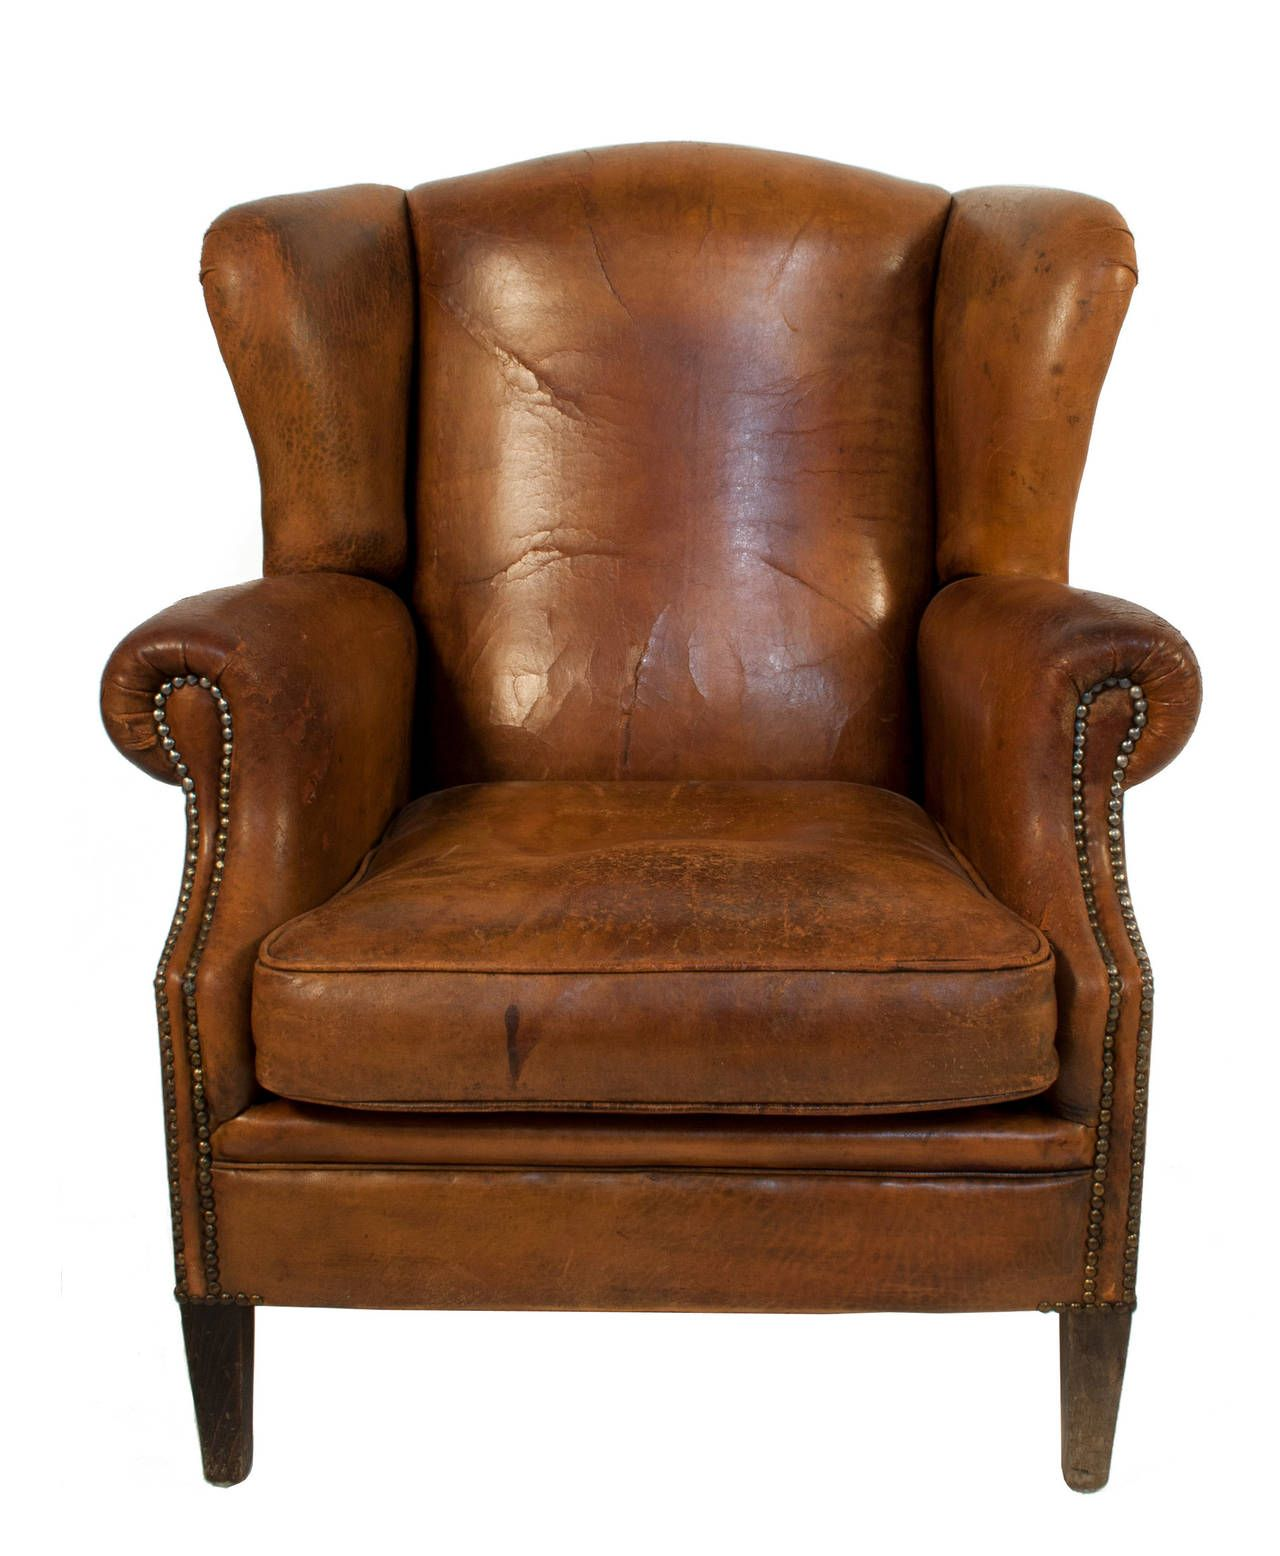 leather wingback chair  1920s  vintage 1920s home